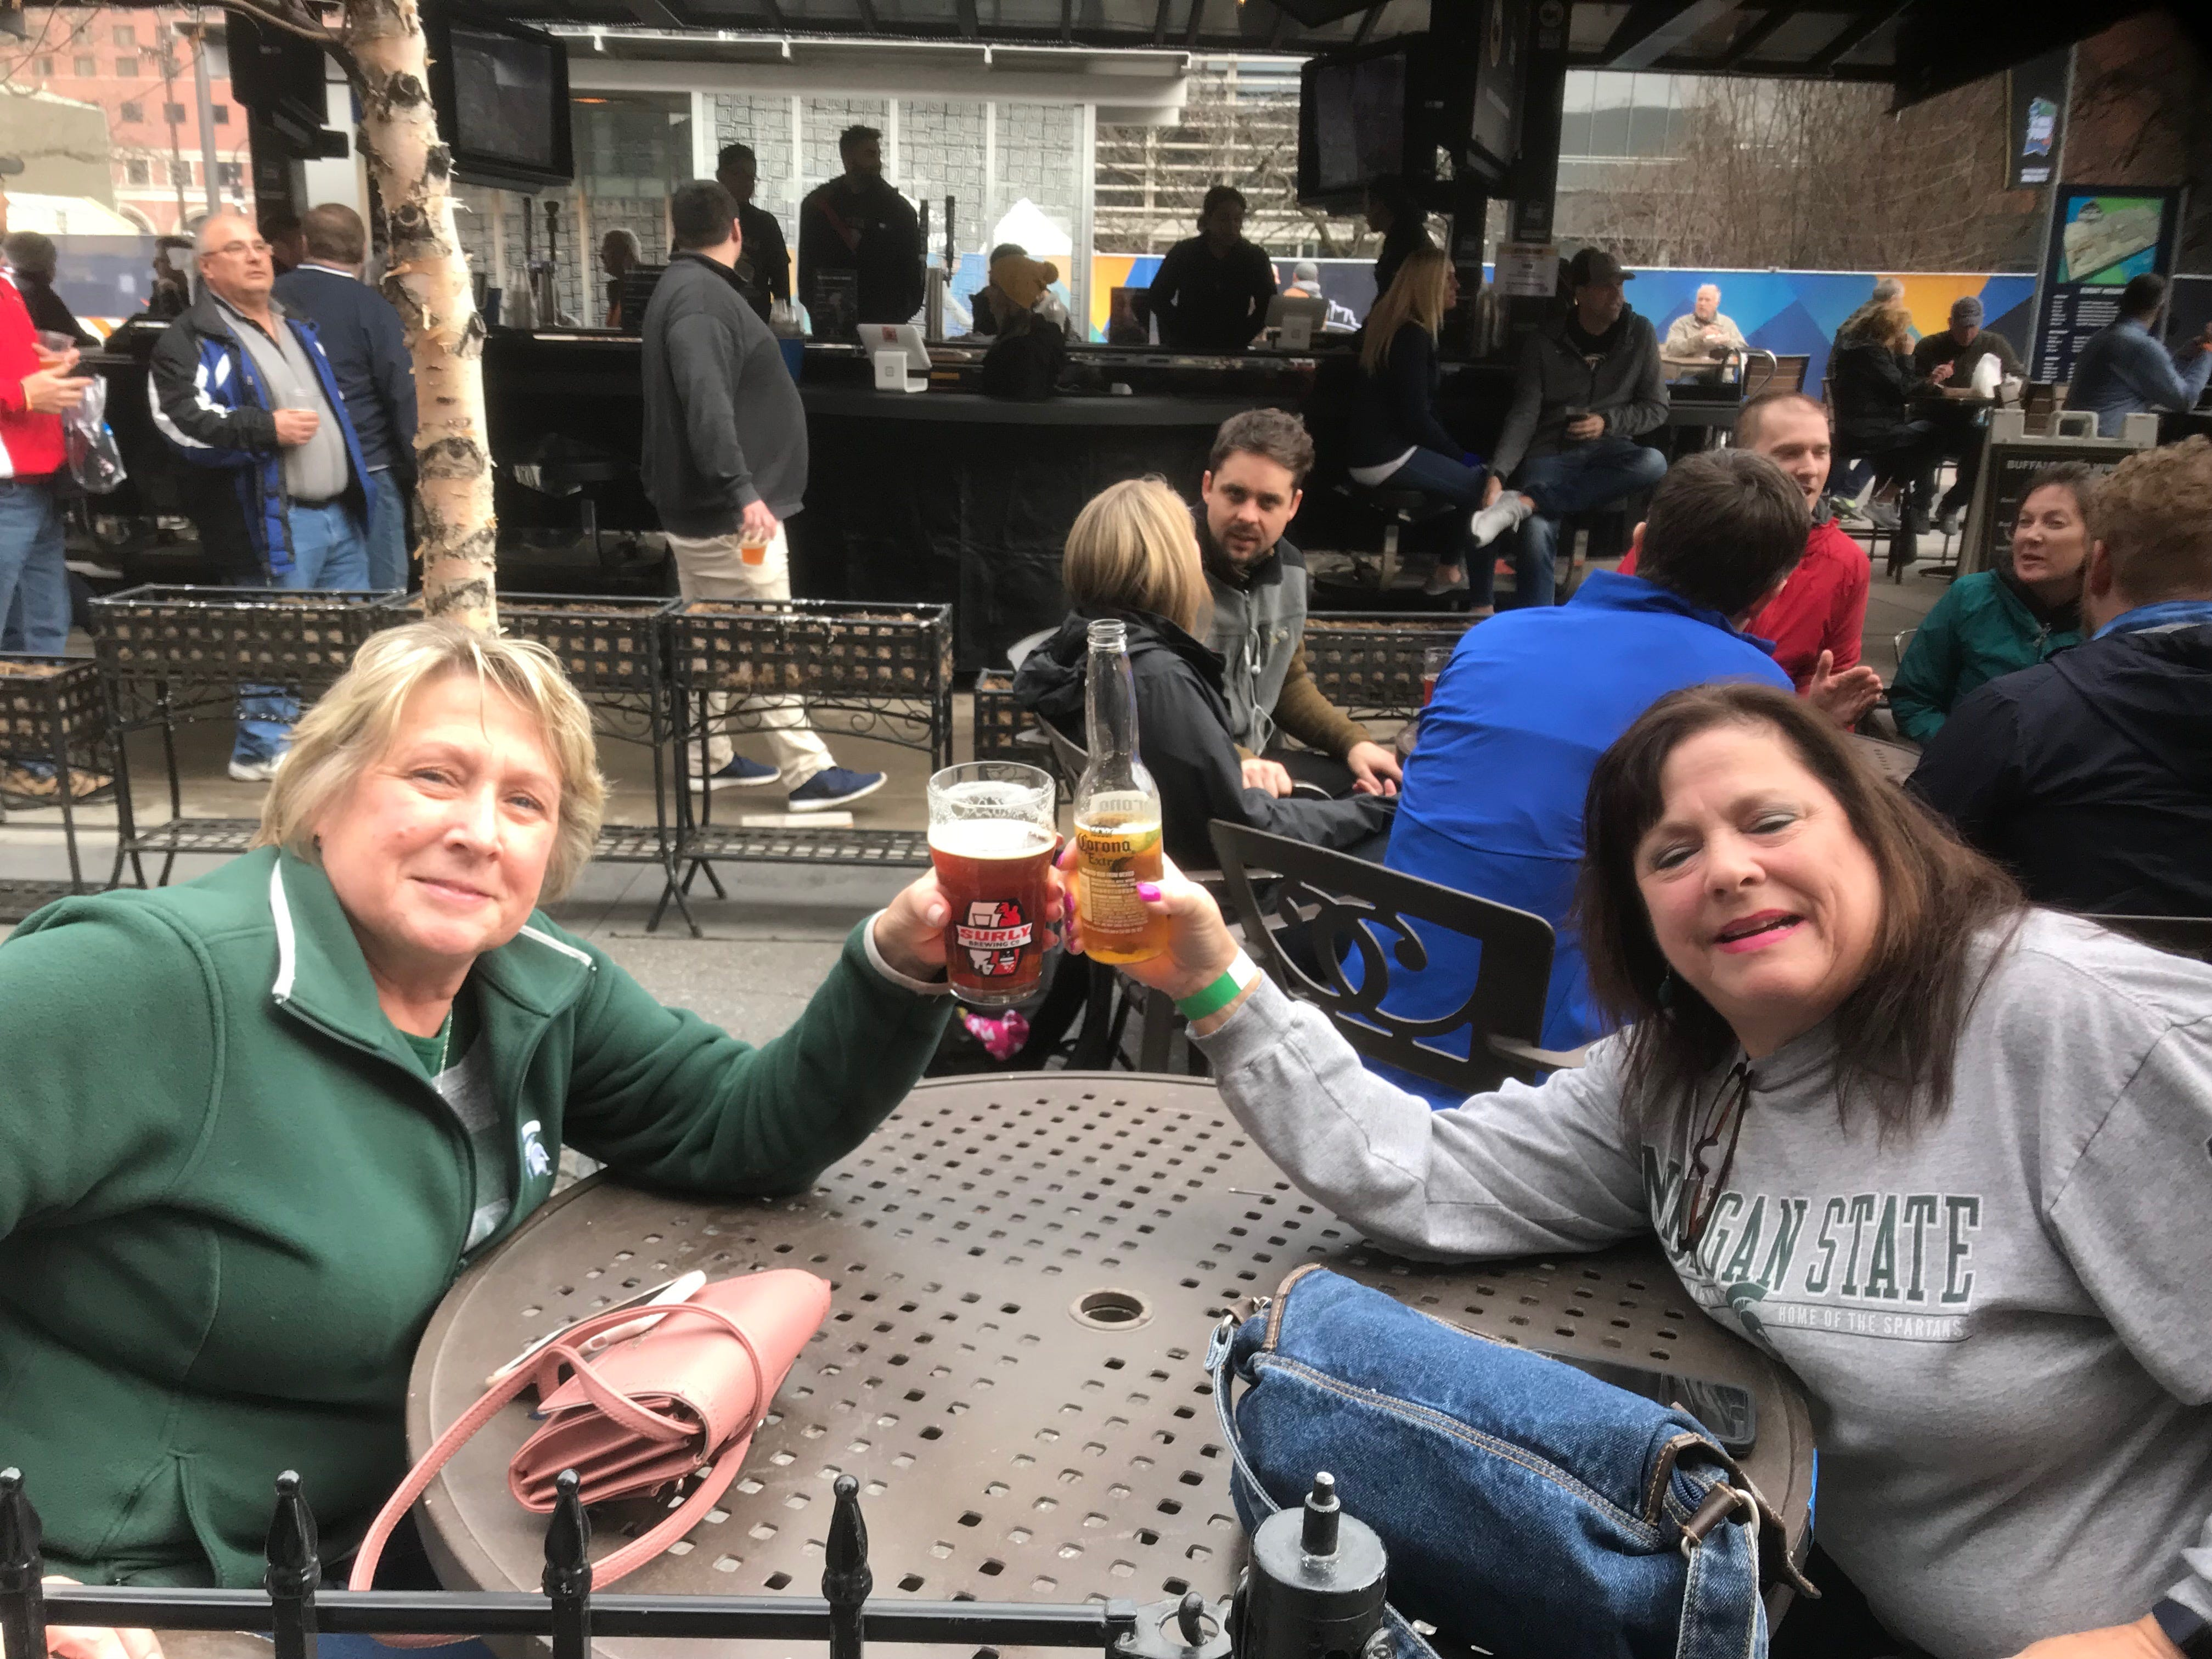 Michigan State University alums and former college roommates Kerry Quast, left, 59, a Birmingham native who now lives in Ohio, and Patty Walters, 59, of New Mexico met up in Minneapolis for the Final Four after years of watching Spartan basketball games together over text.